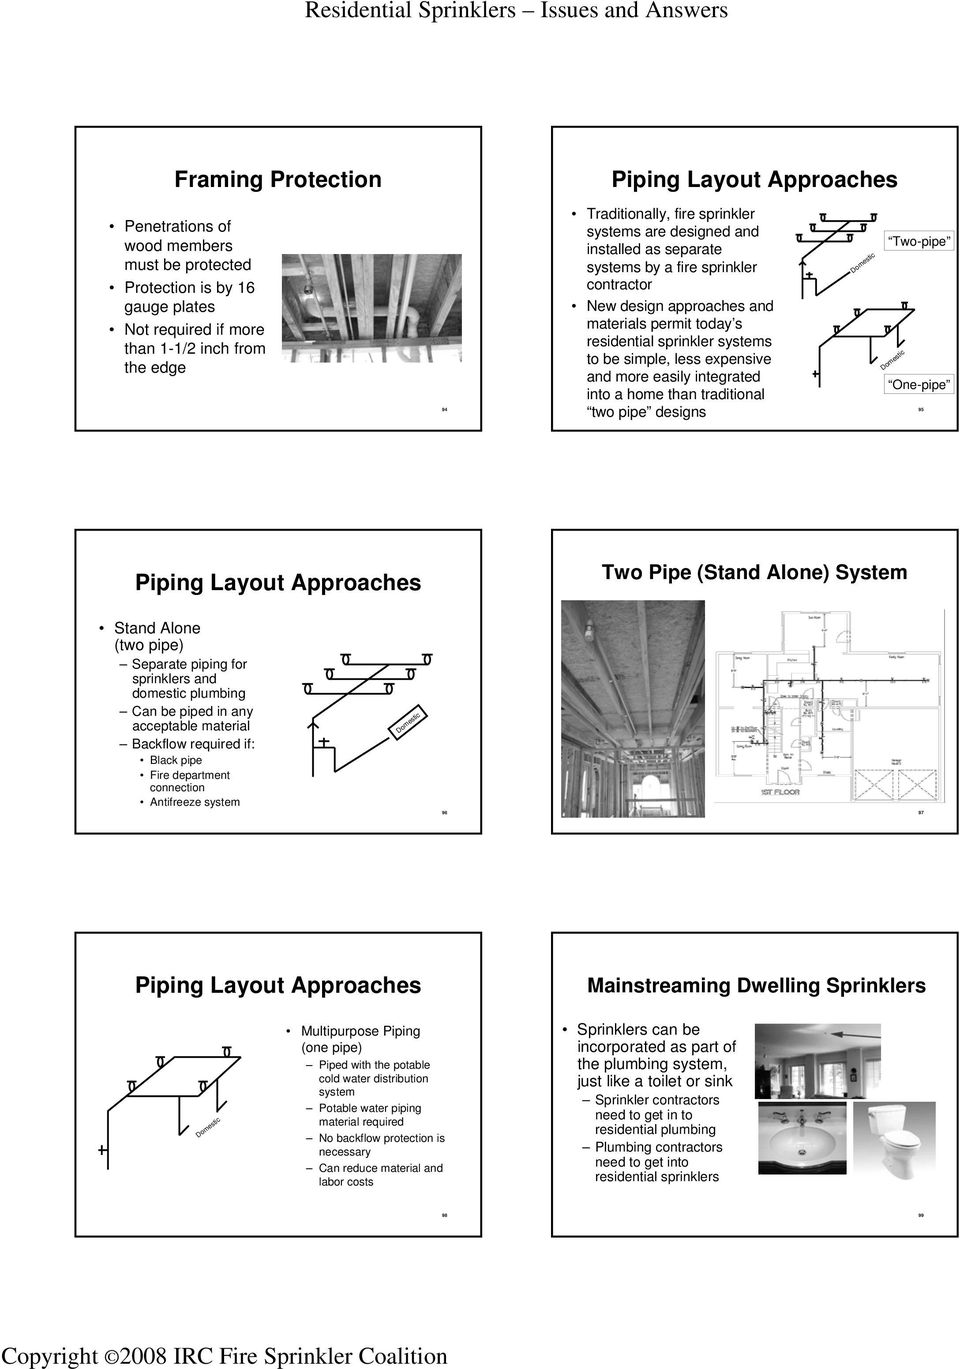 Your Instructor Two Biggest Obstacles To Residential Sprinklers Piping Layout Pictures Expensive And More Easily Integrated Into A Home Than Traditional Pipe Designs Domestic